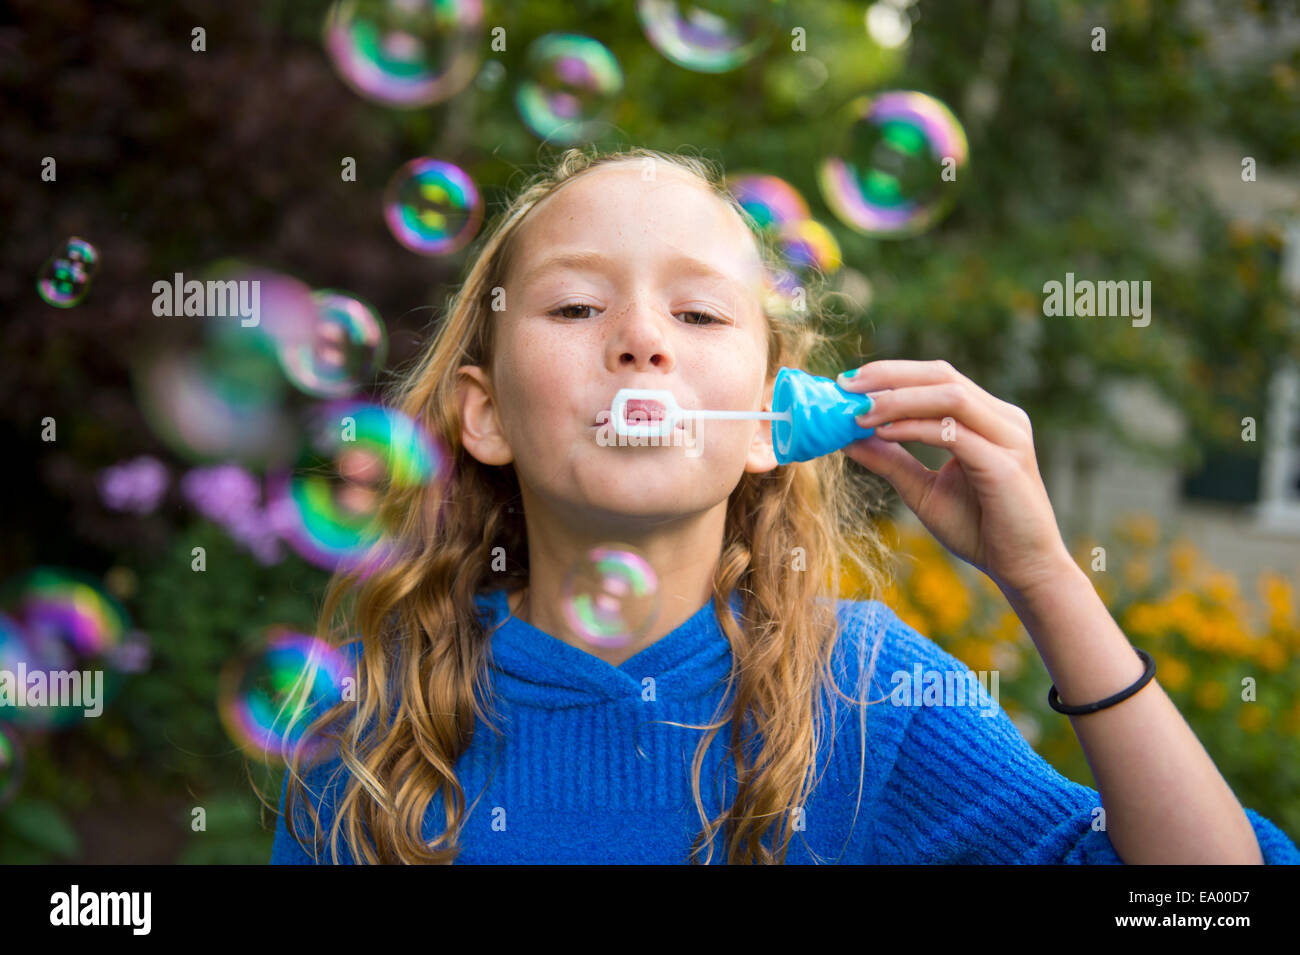 Girl blowing bubbles in garden Photo Stock